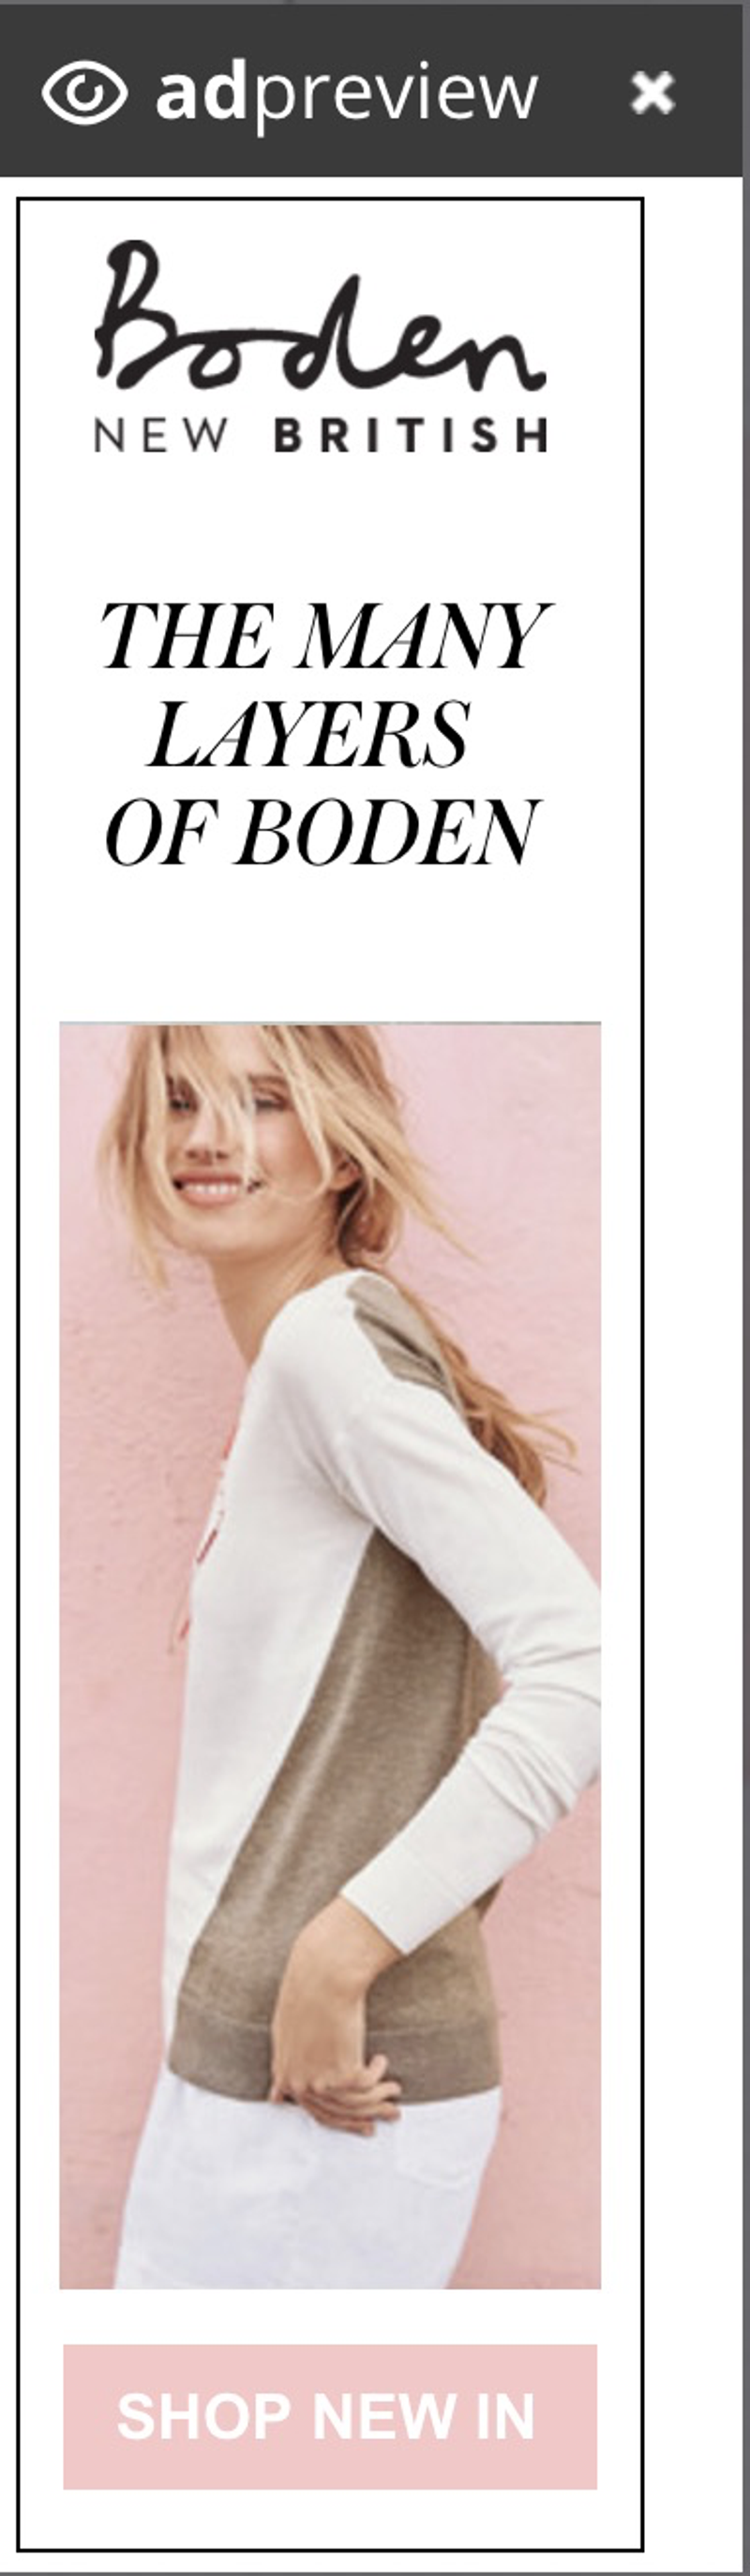 Witty Bitty Boden ads and emails